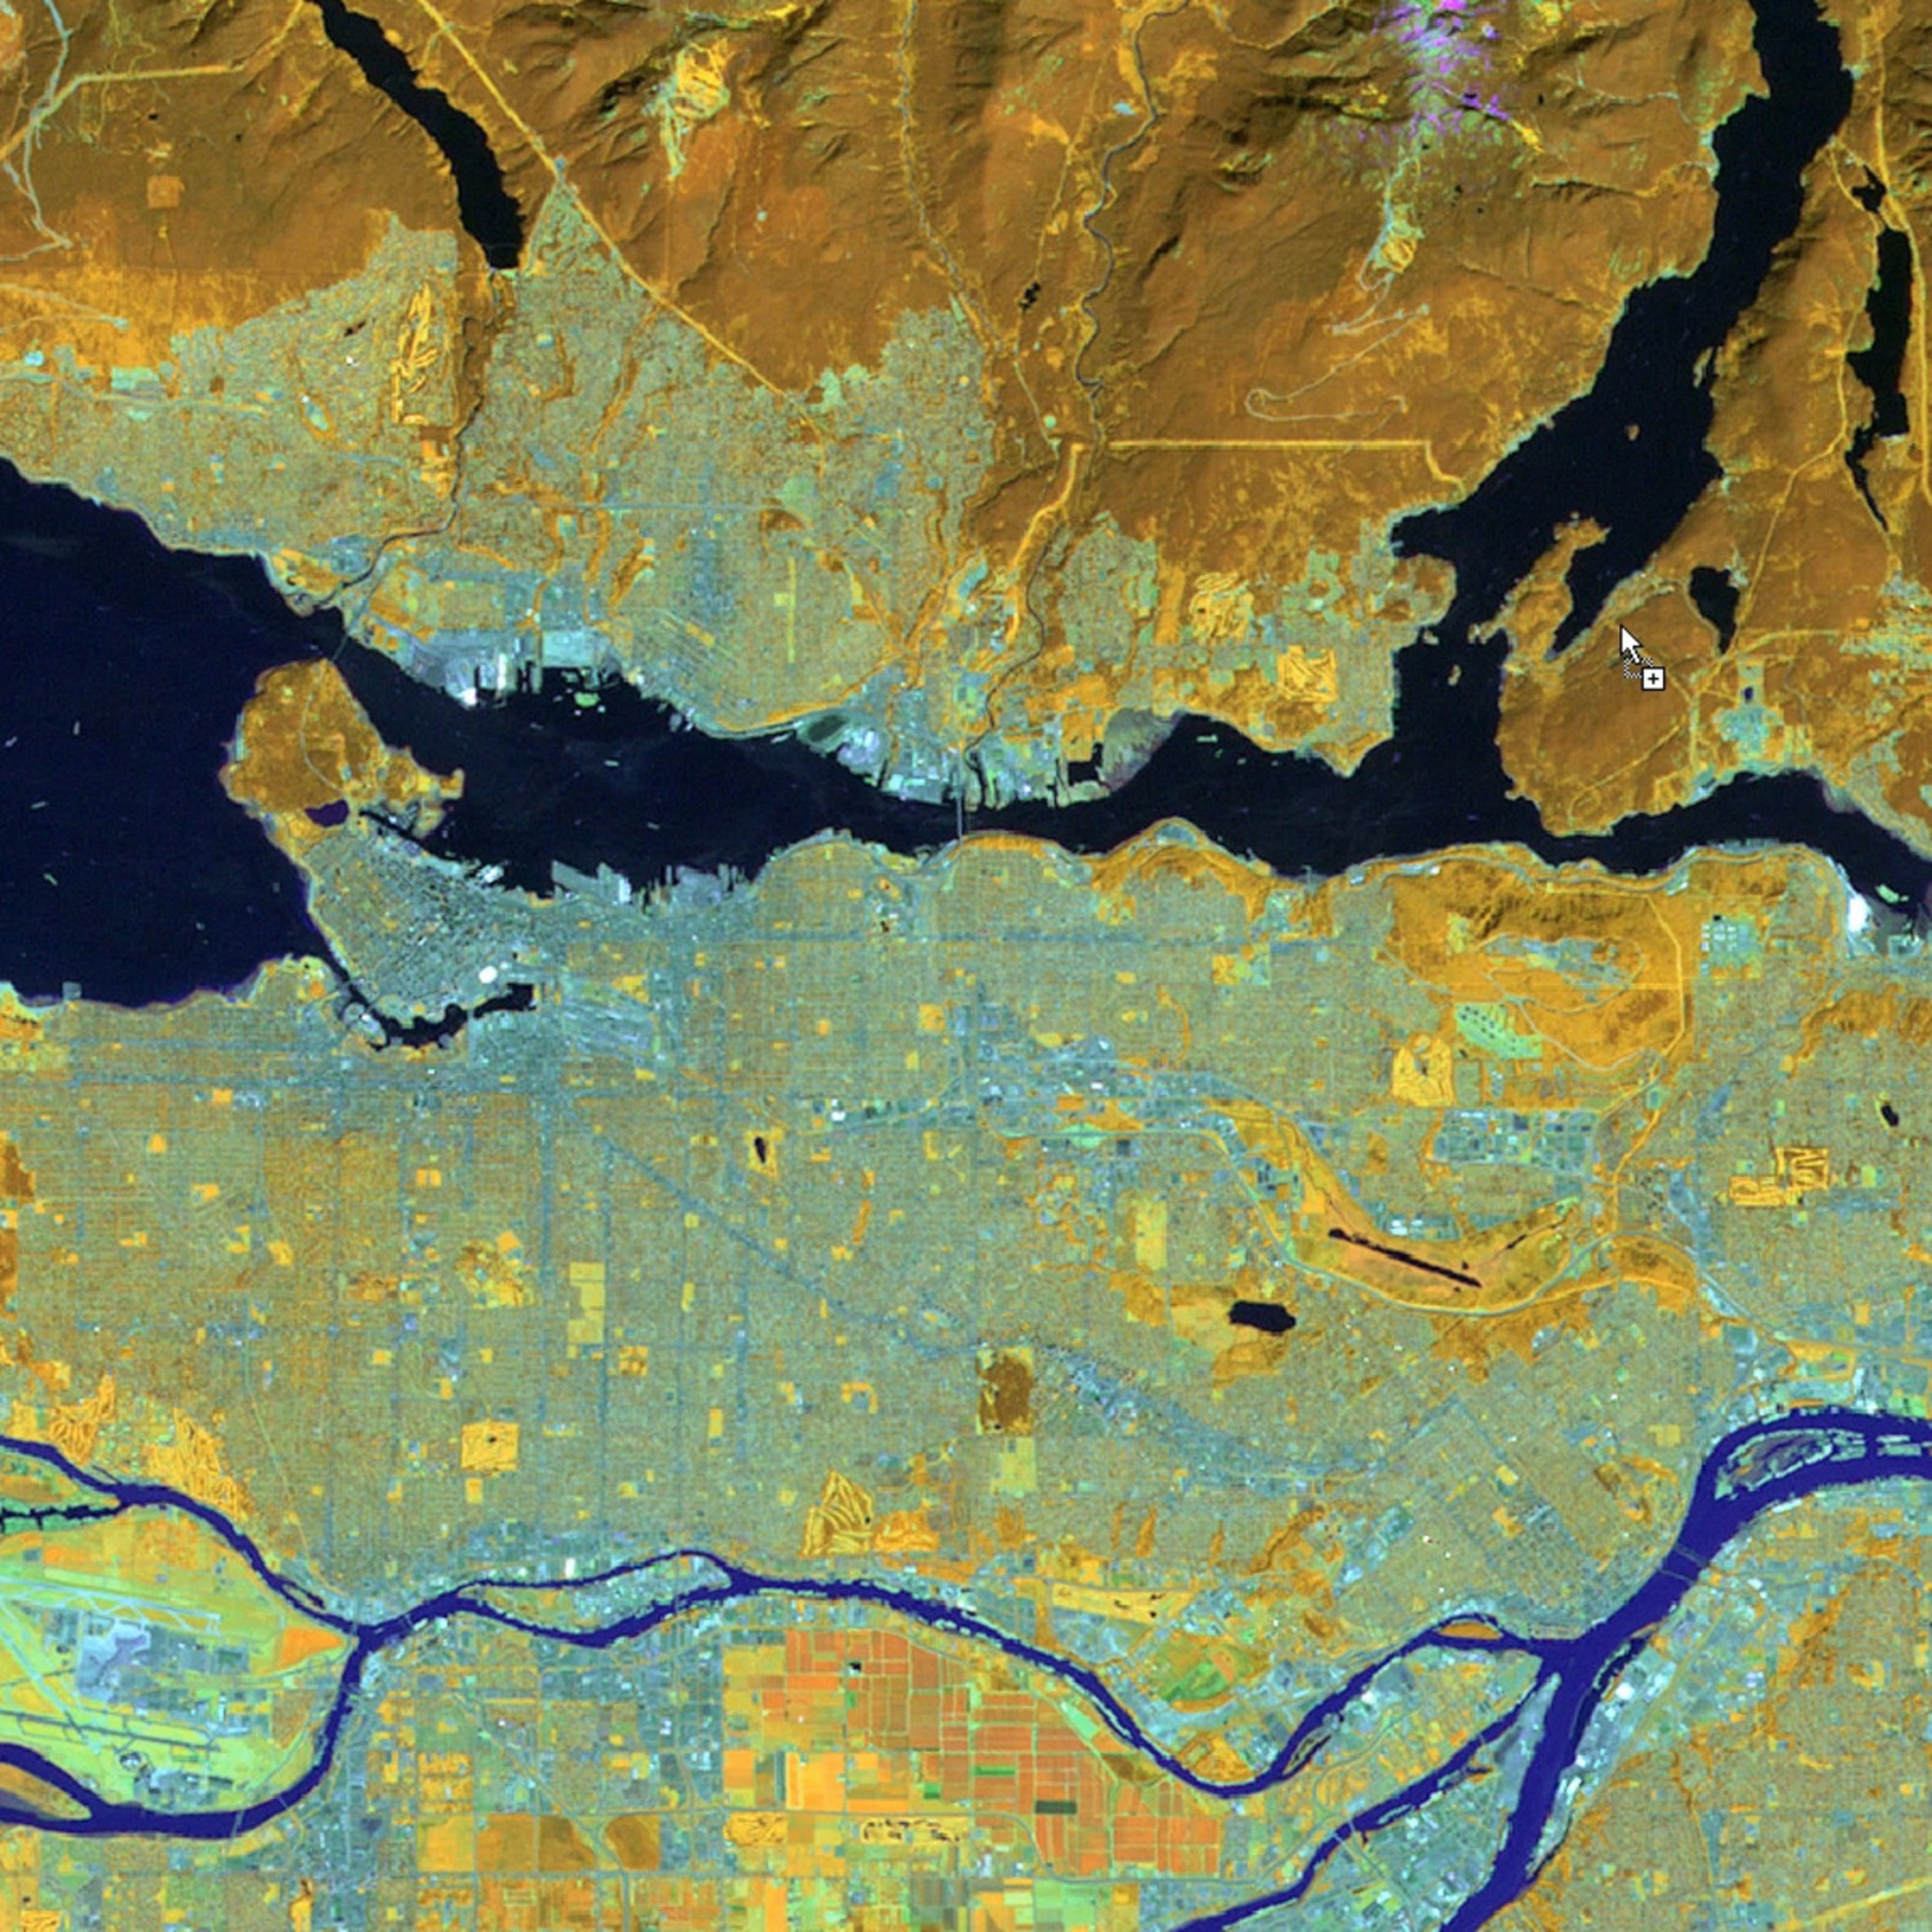 Spatial Analysis and Satellite Imagery in a GIS   Coursera